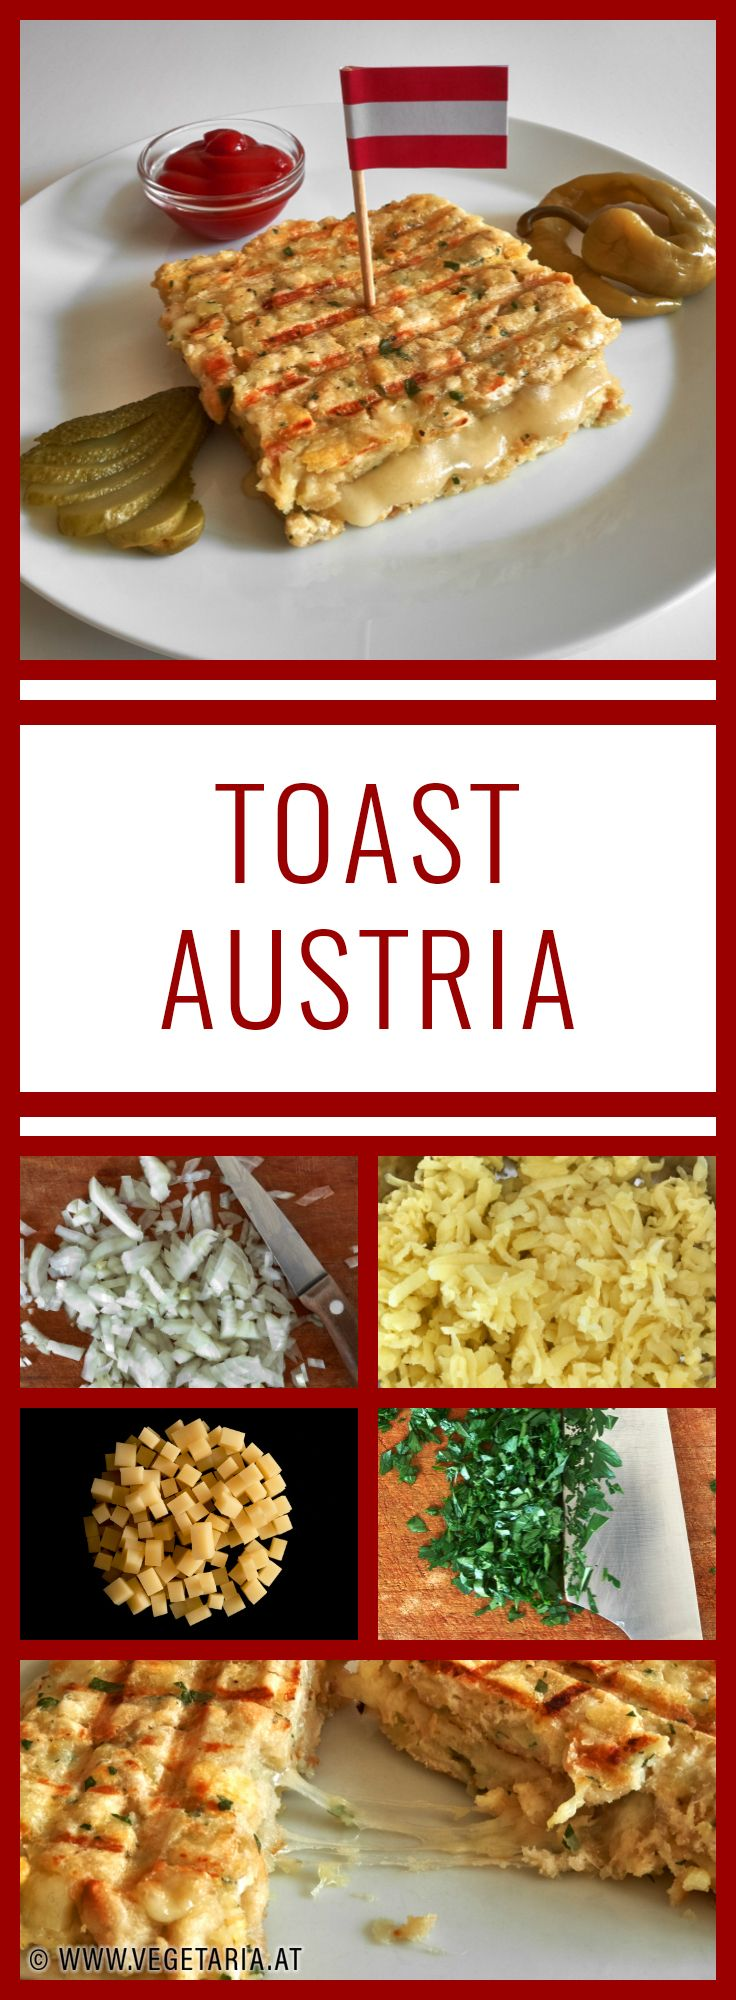 Forget about Toast Hawaii and get ready for Toast Austria !